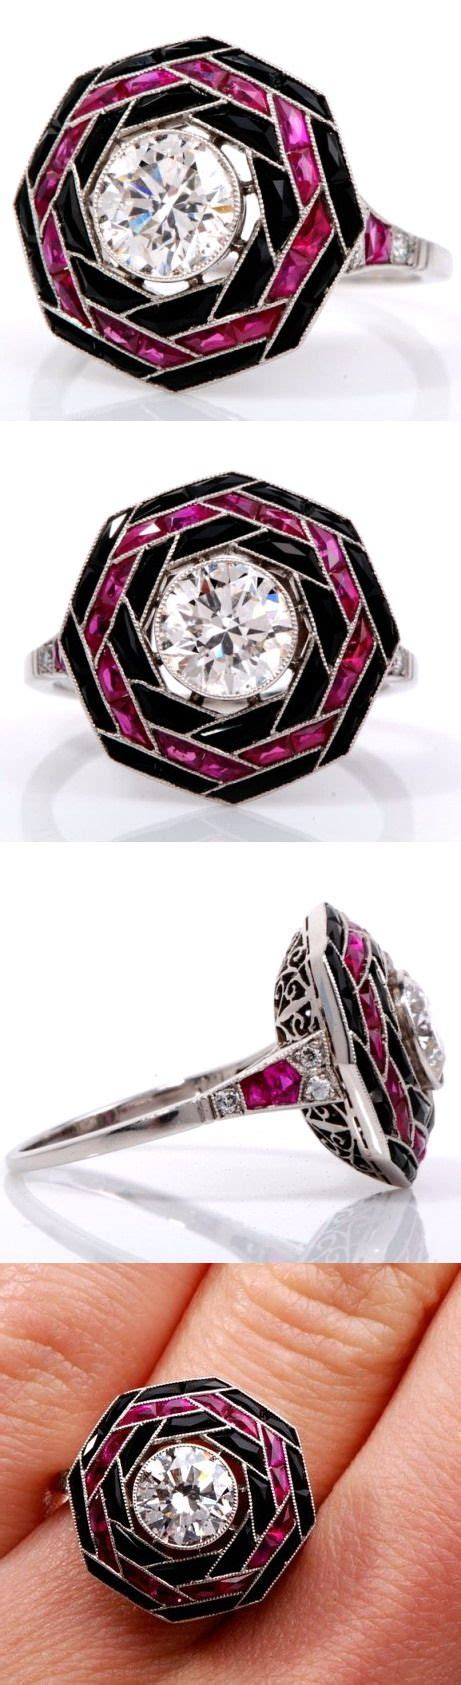 beautiful ruby jewelry  engagement rings  pinterest